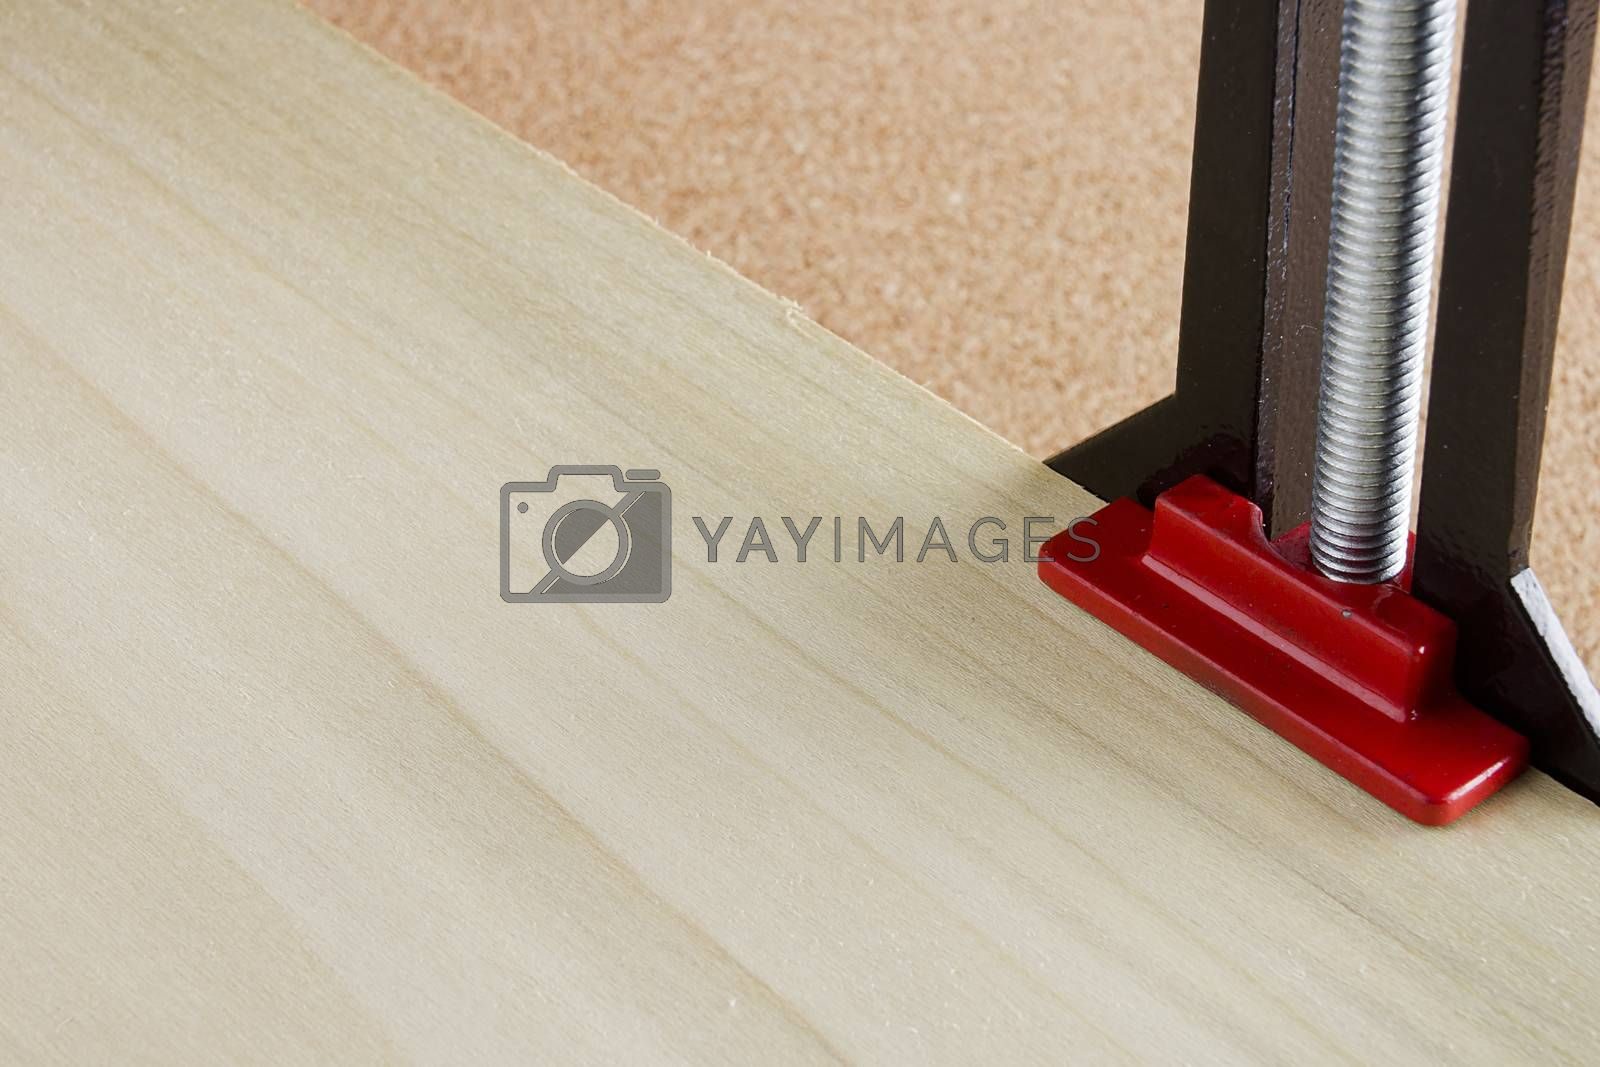 Royalty free image of Angle clamp by VIPDesignUSA